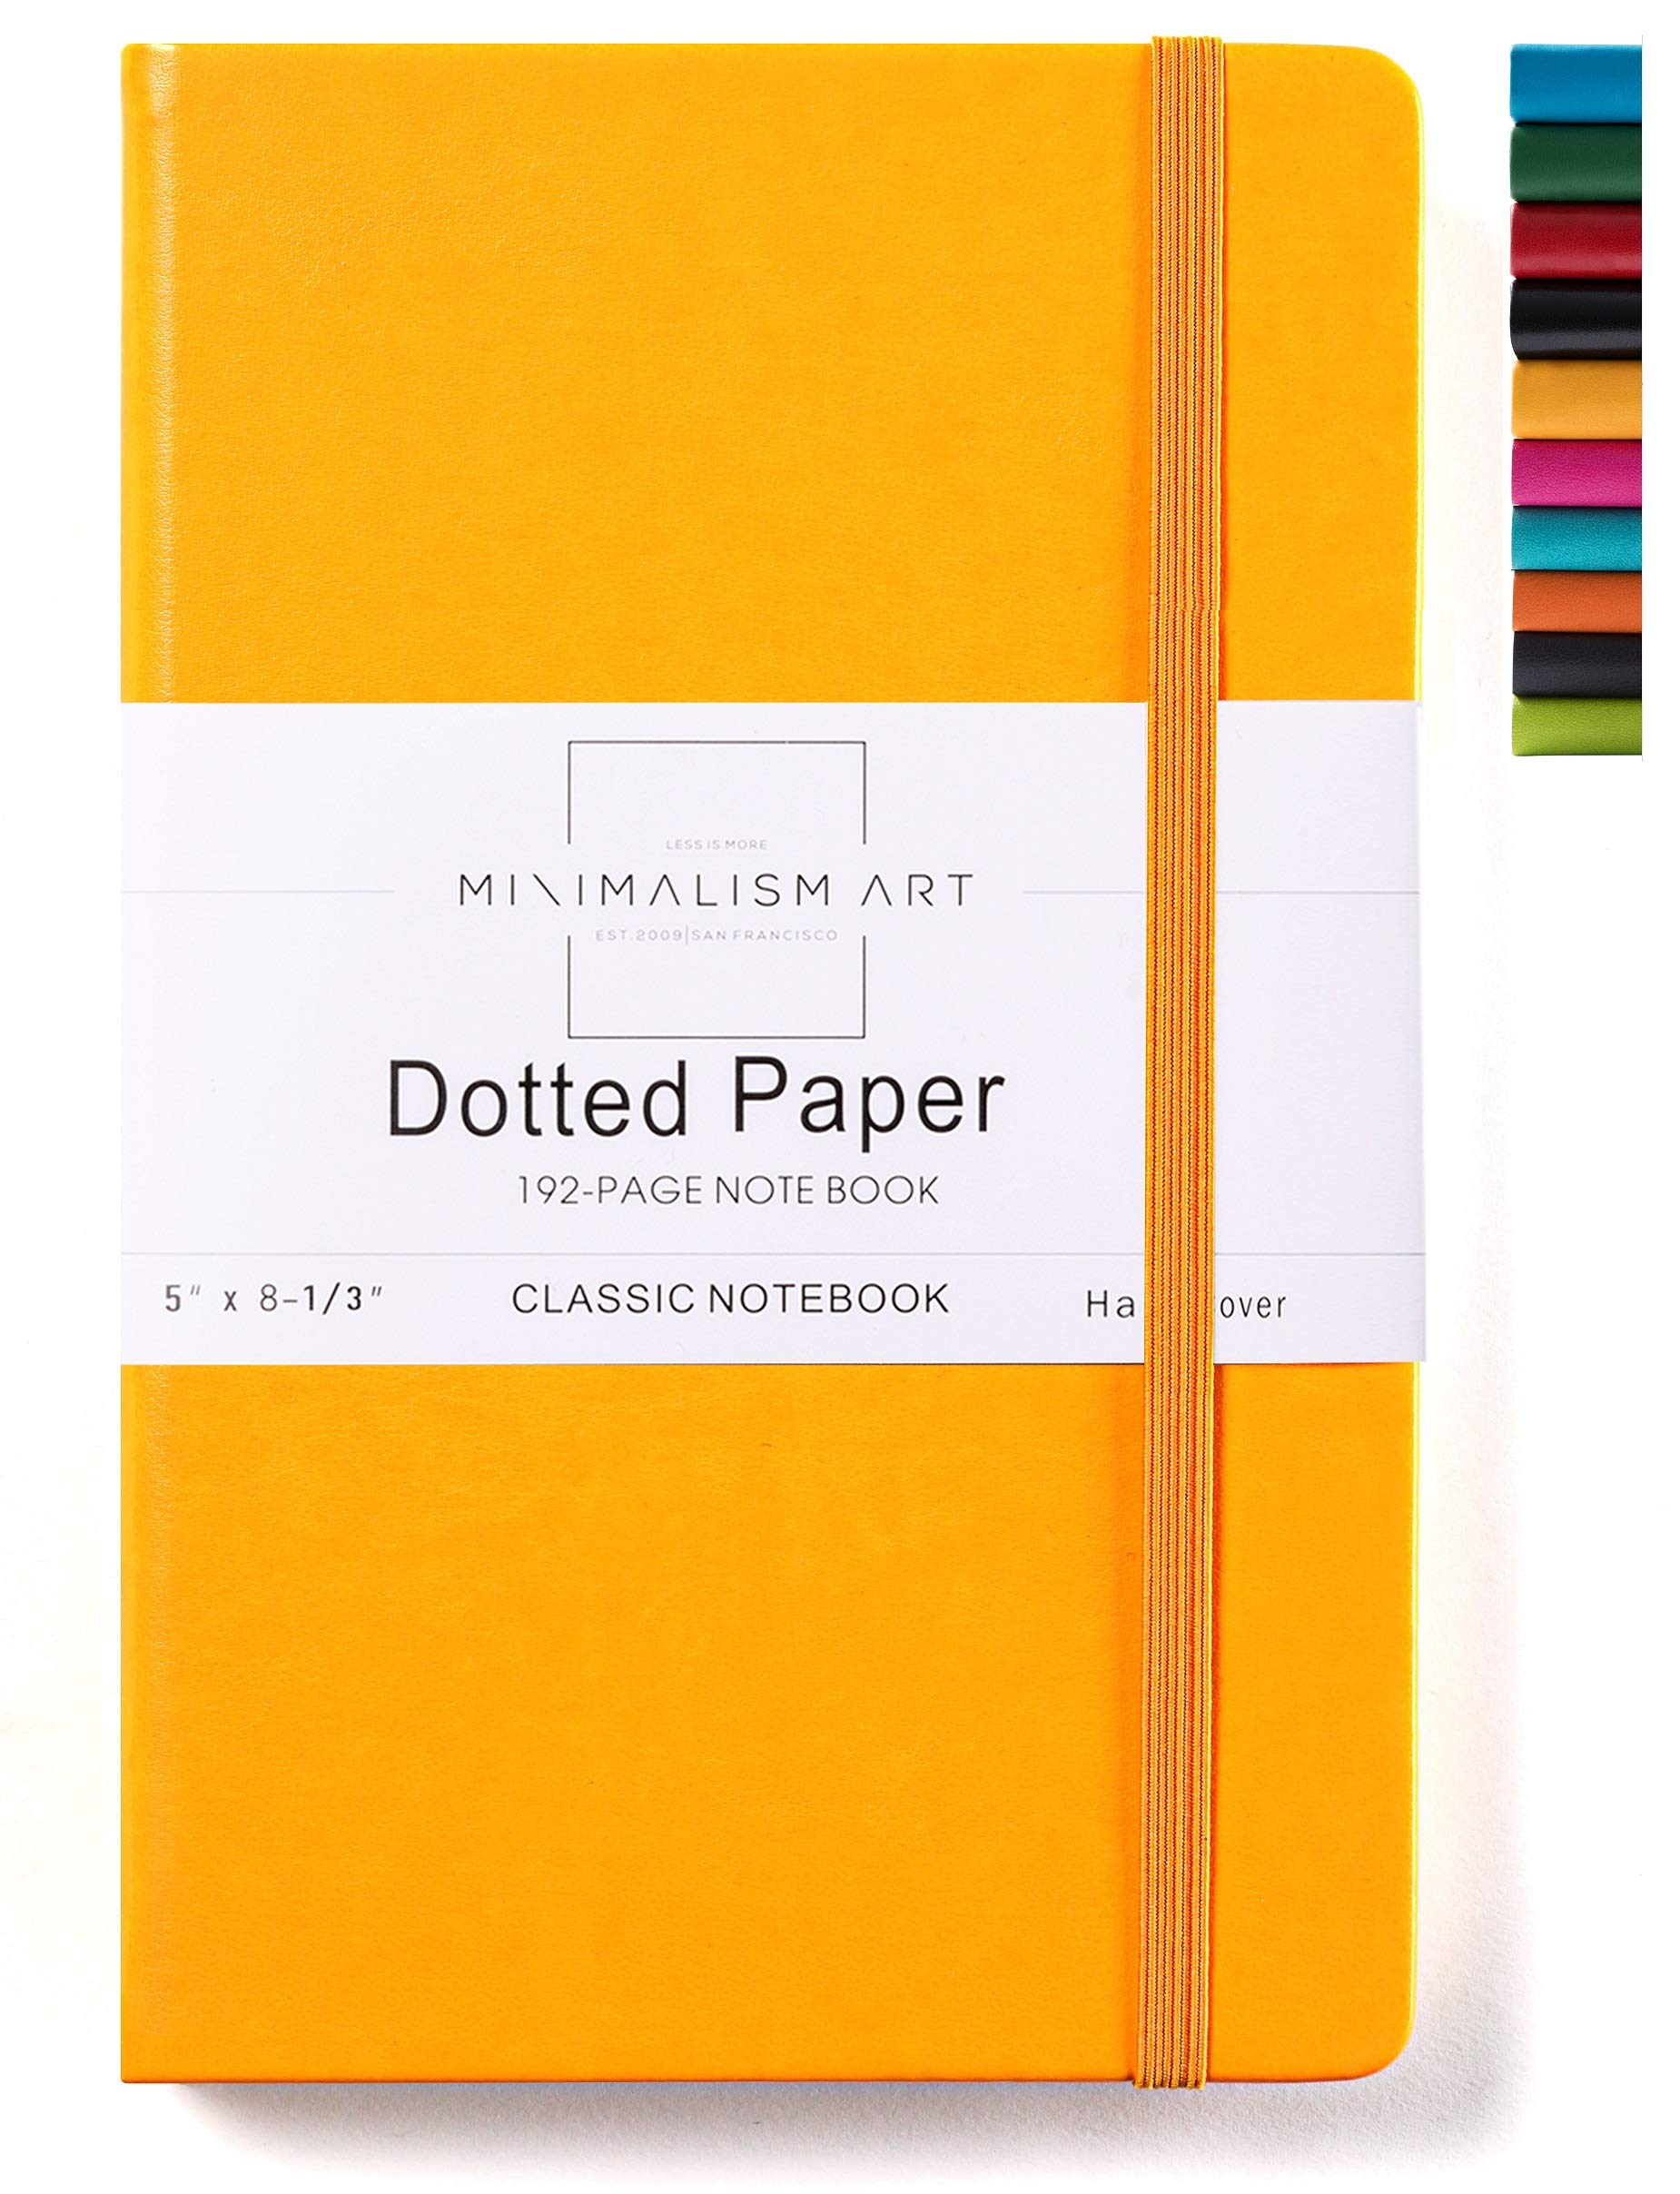 Minimalism Art, Classic Notebook Journal, A5 Size 5 X 8.3 inches, Yellow, Dotted Grid Page, 192 Pages, Hard Cover, Fine PU Leather, Inner Pocket, Quality Paper-100gsm, Designed in San Francisco